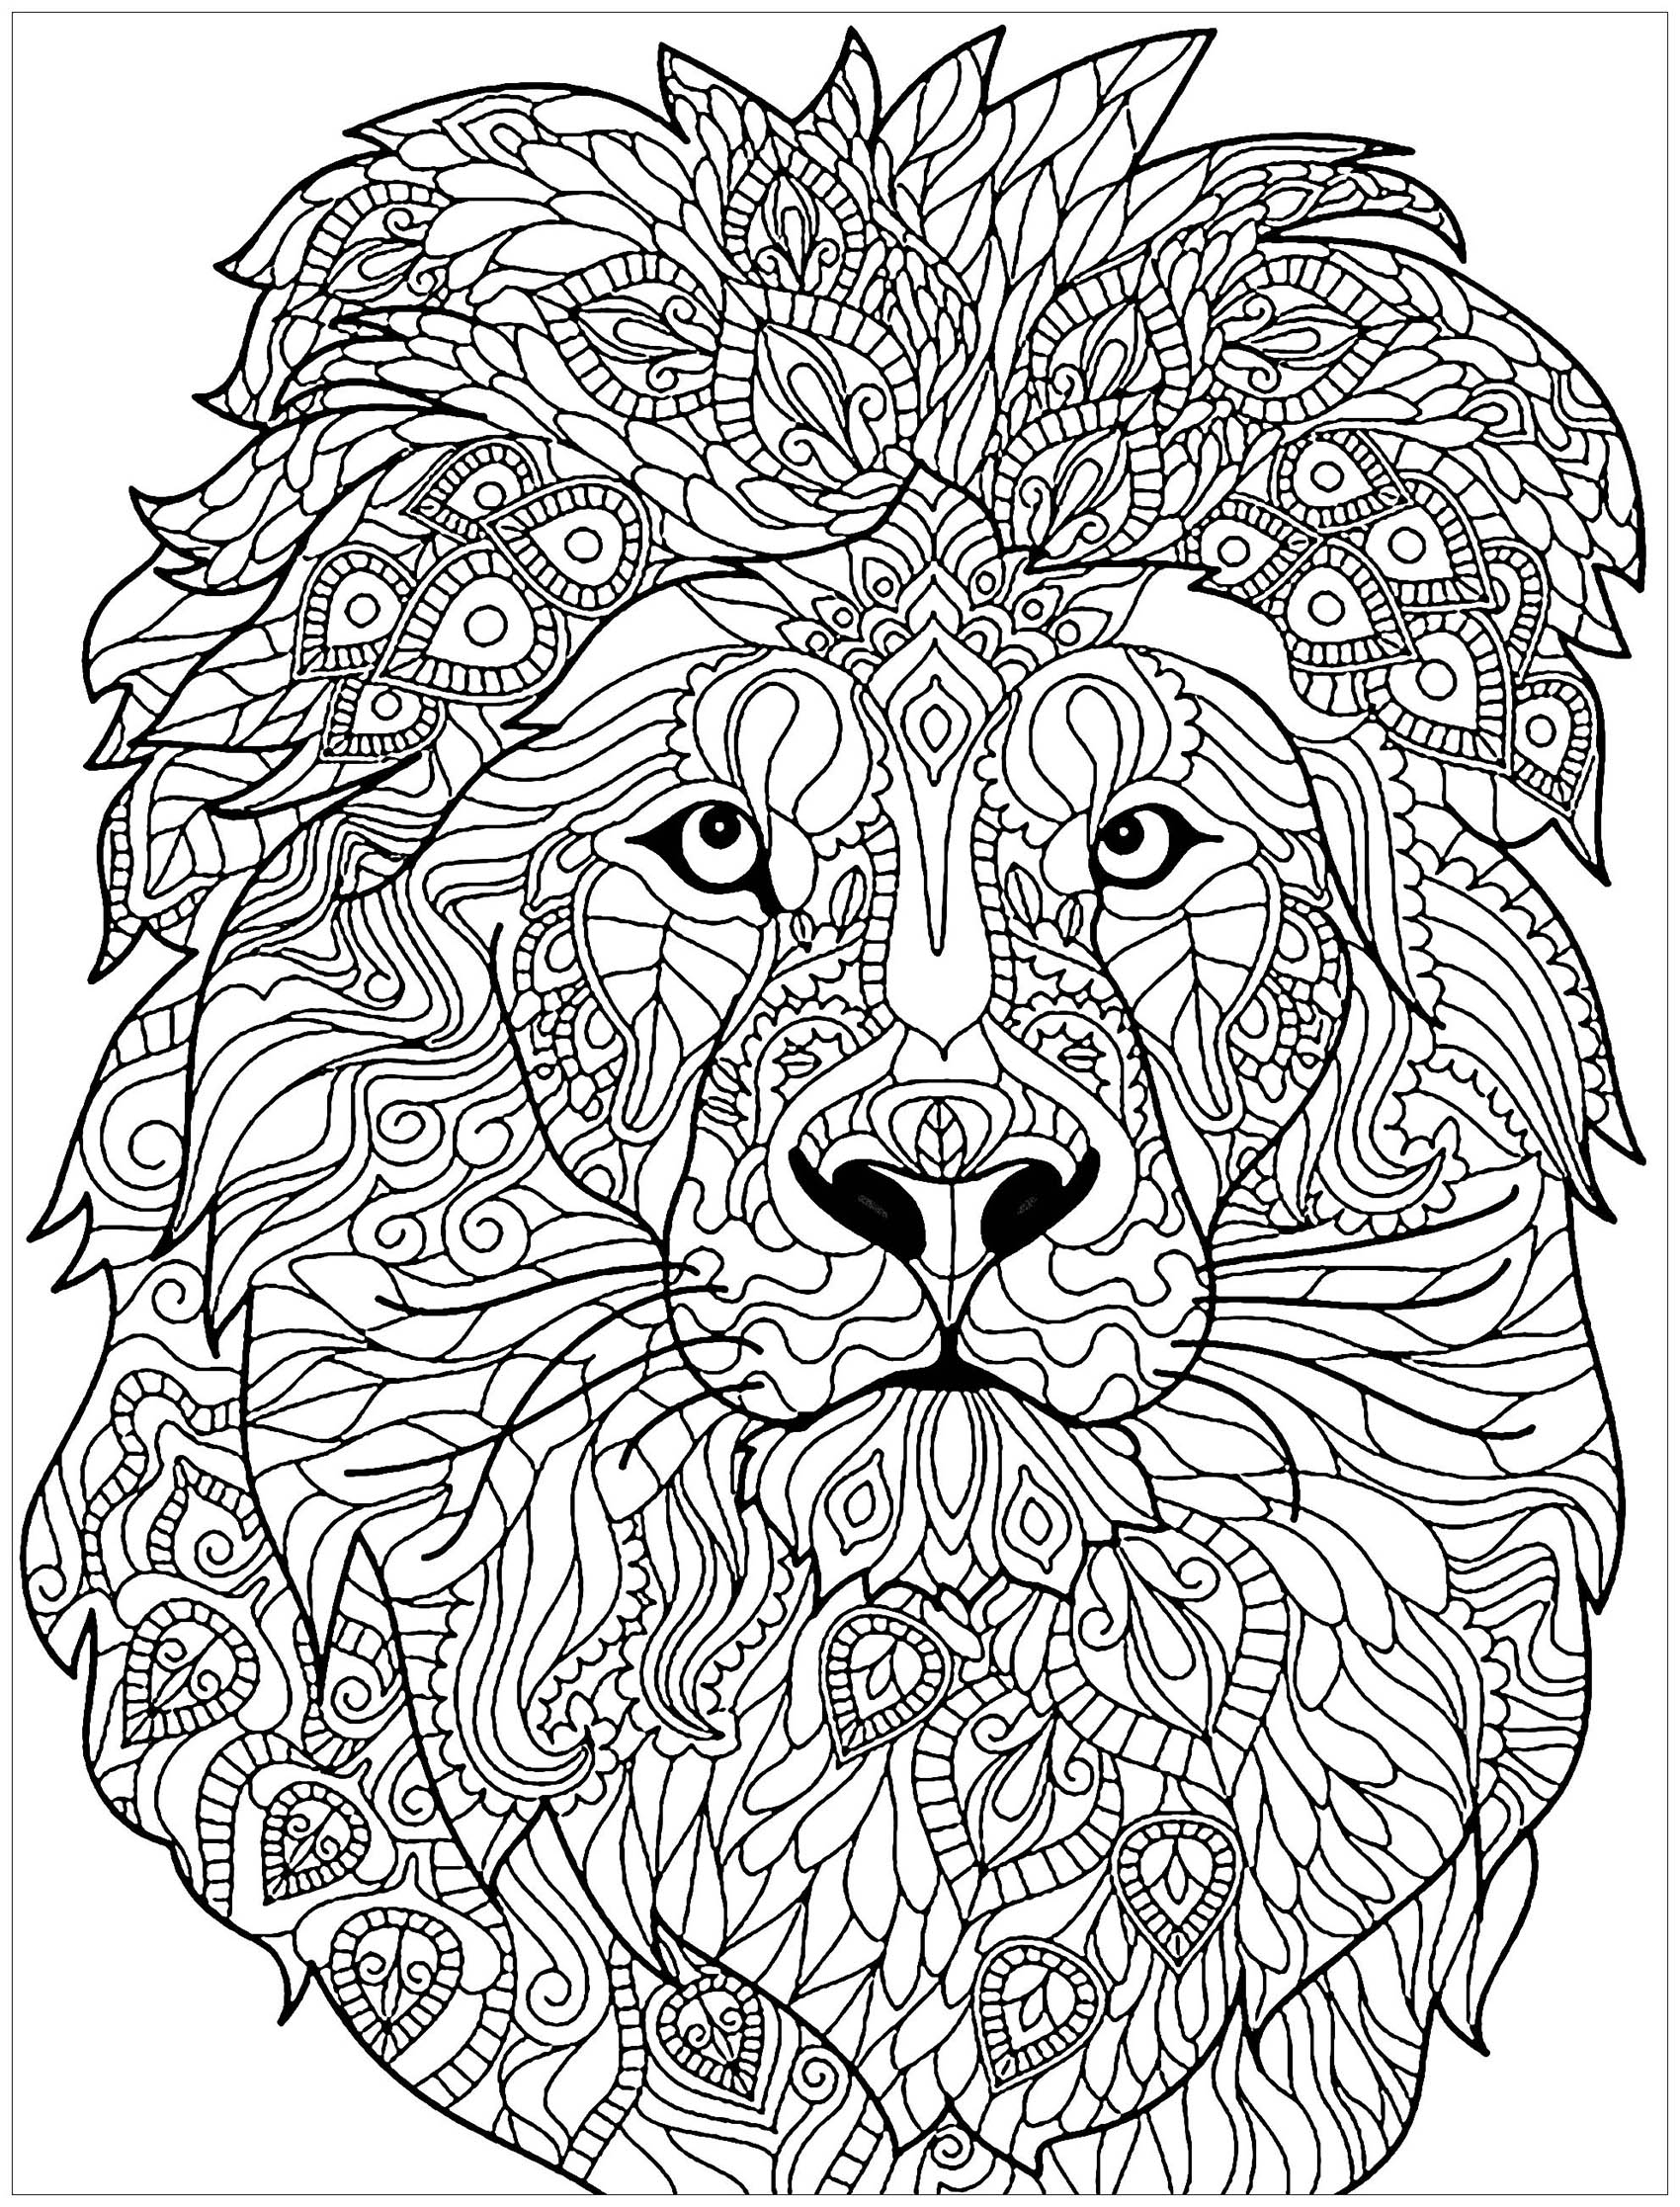 coloring lion pages free printable lion coloring pages for kids pages coloring lion